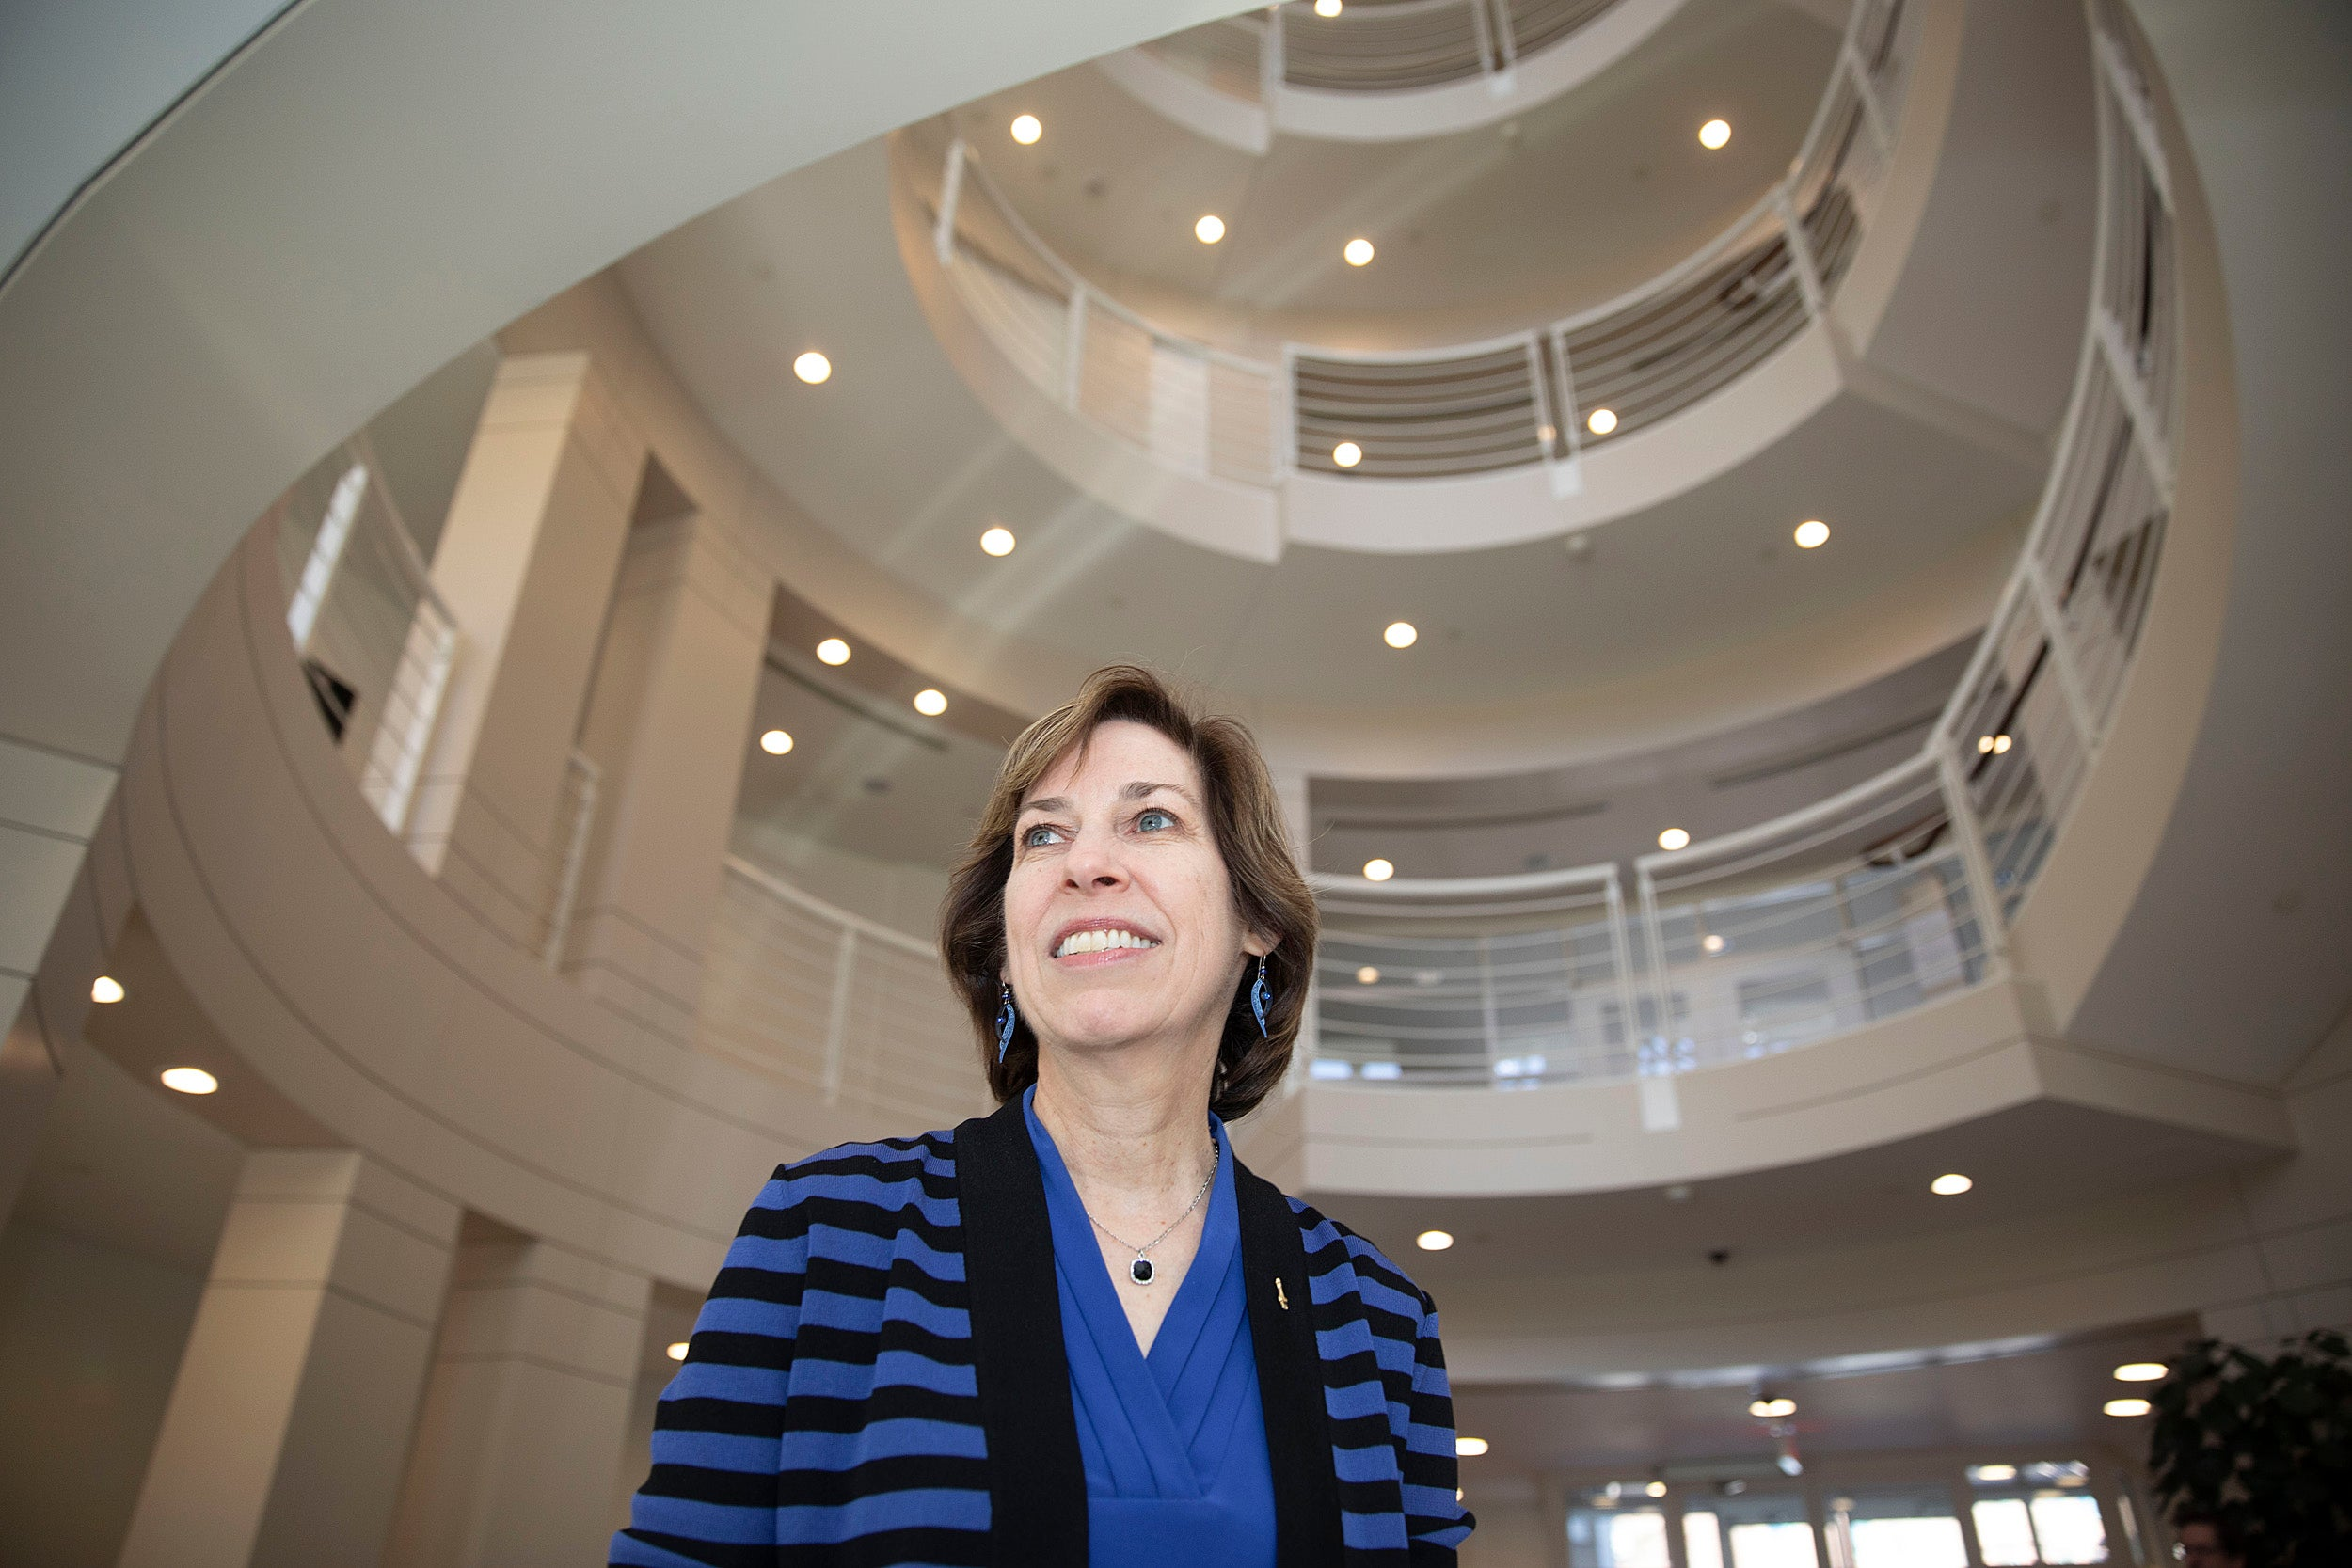 Ellen Ochoa is the former director of the Johnson Space Center and a Hauser Visiting Leader at the Center for Public Leadership this term.